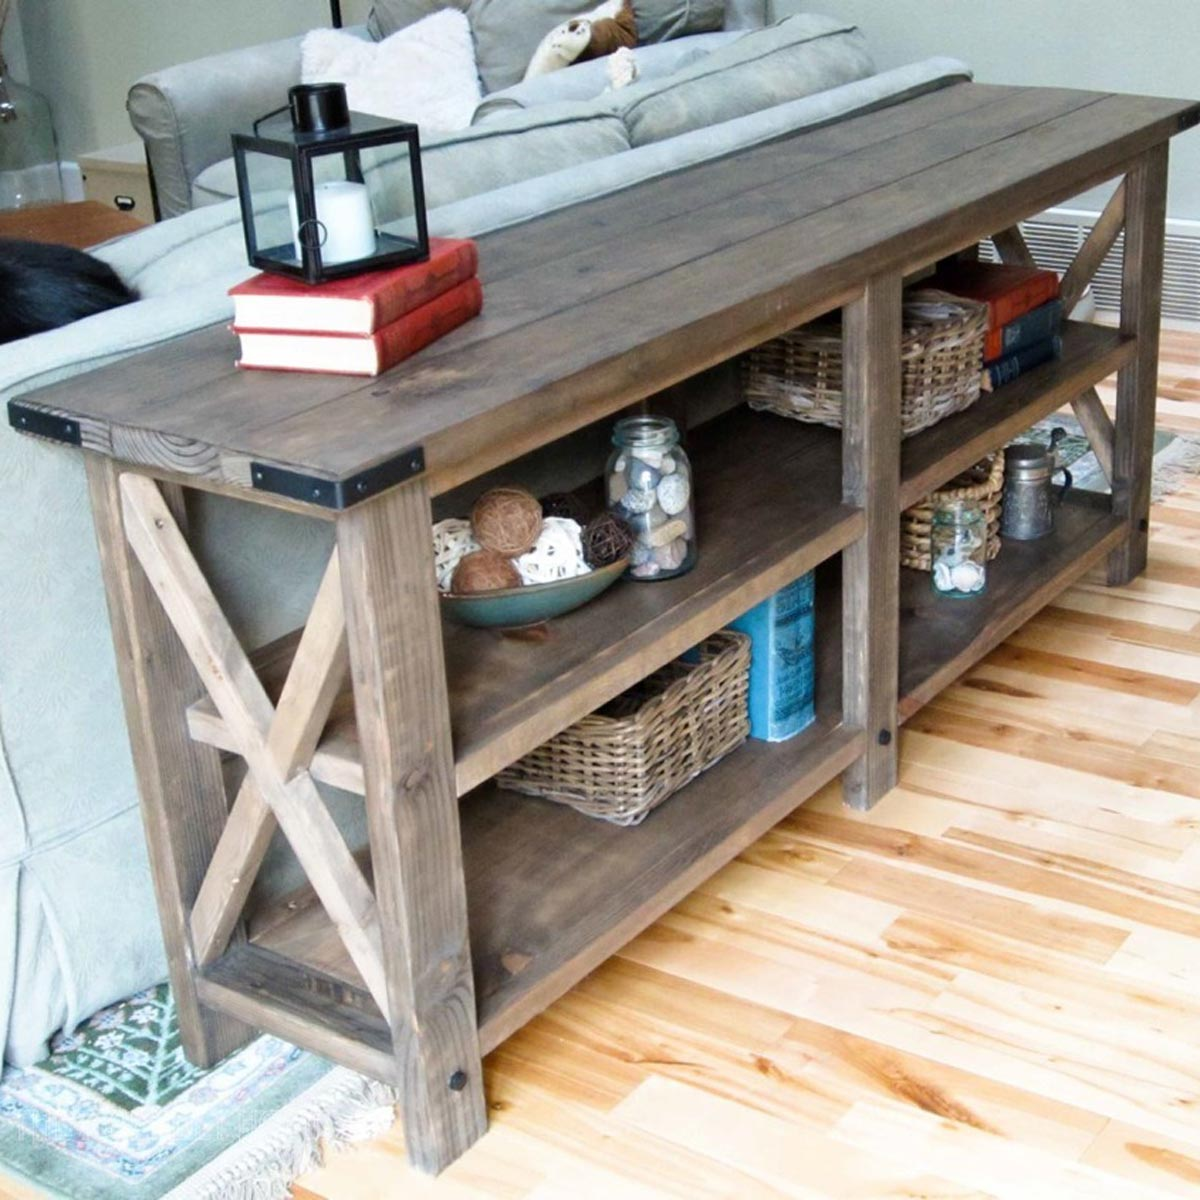 incredible diy end tables simple table ideas the family xendtable wood behind couch white glass top coffee liberty furniture bedroom suites standard living room dimensions pallet